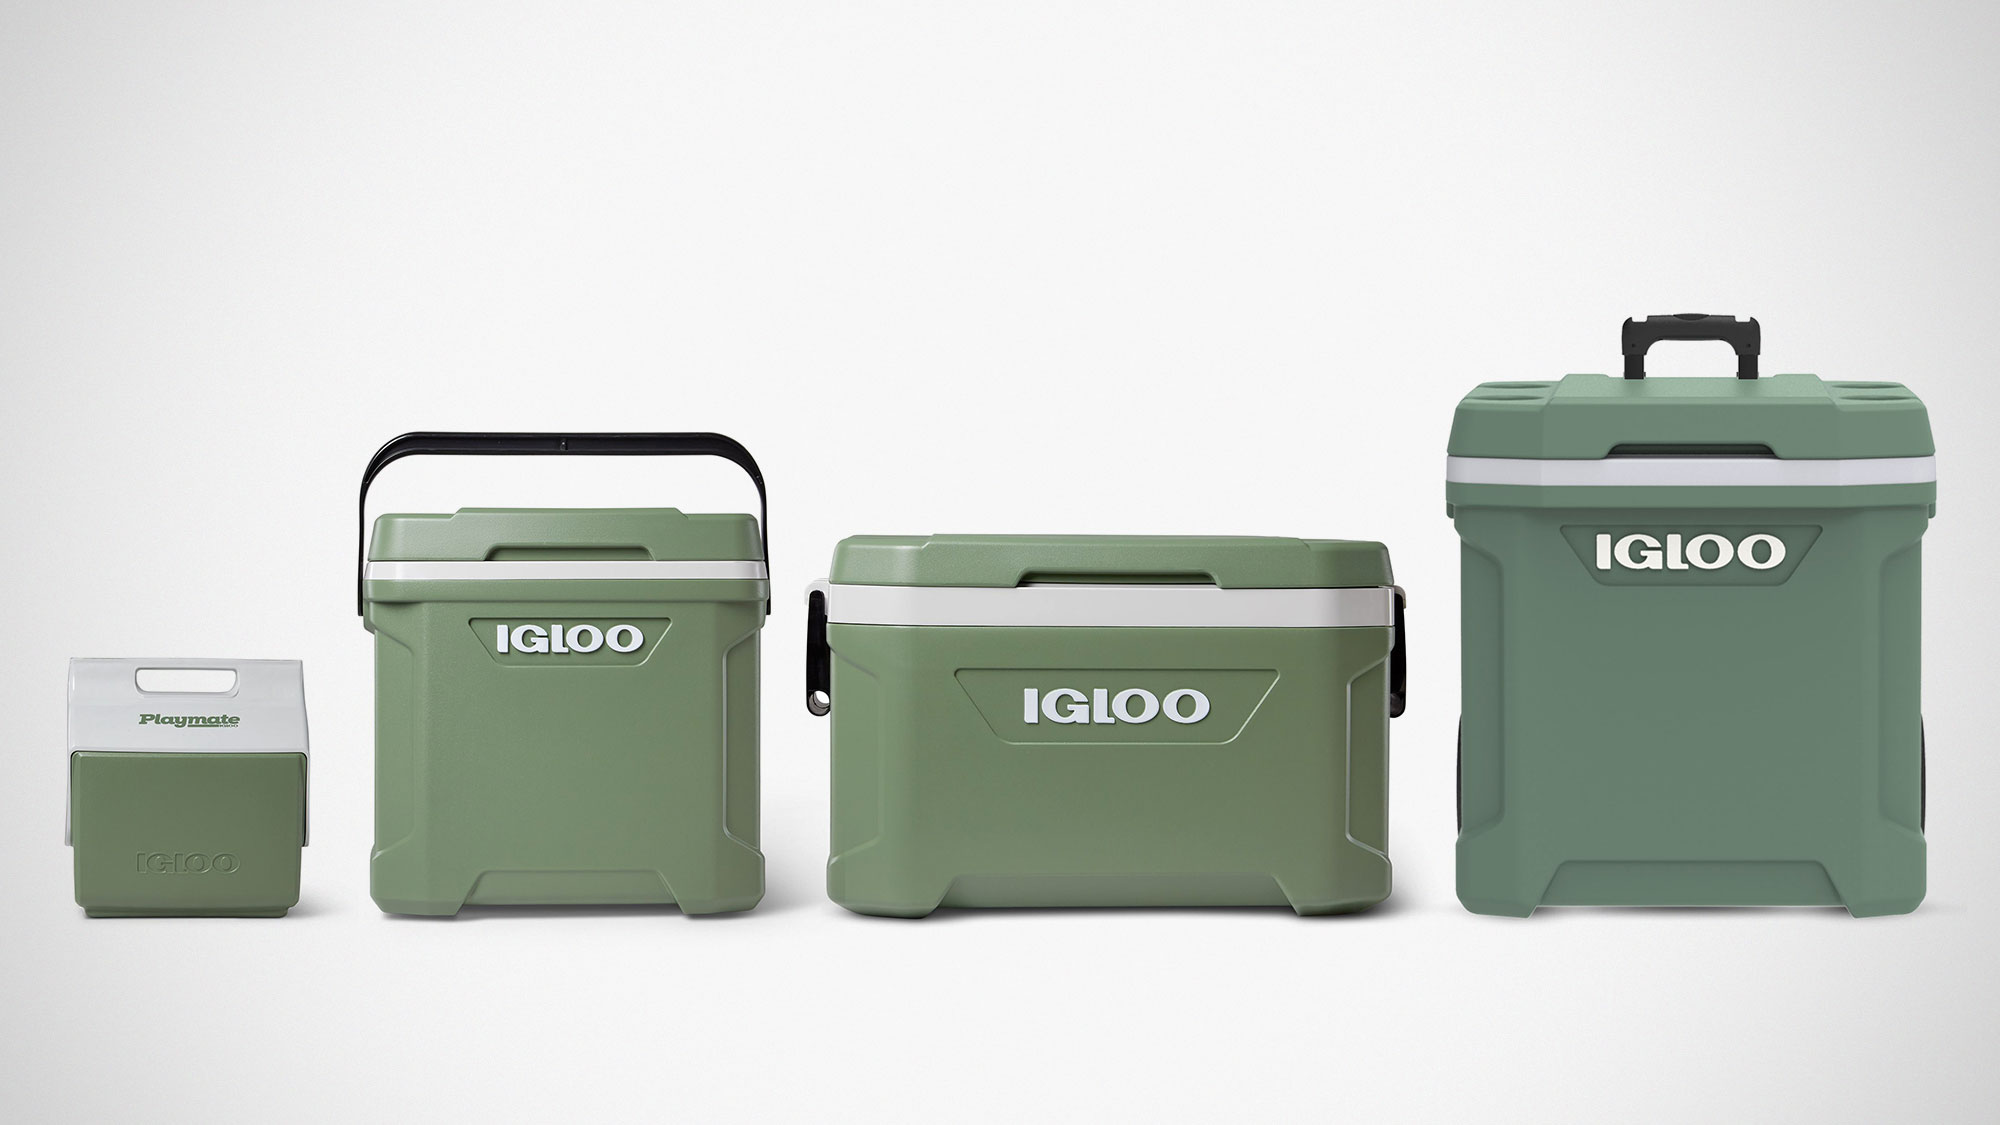 Igloo ECOCOOL Collection of Coolers